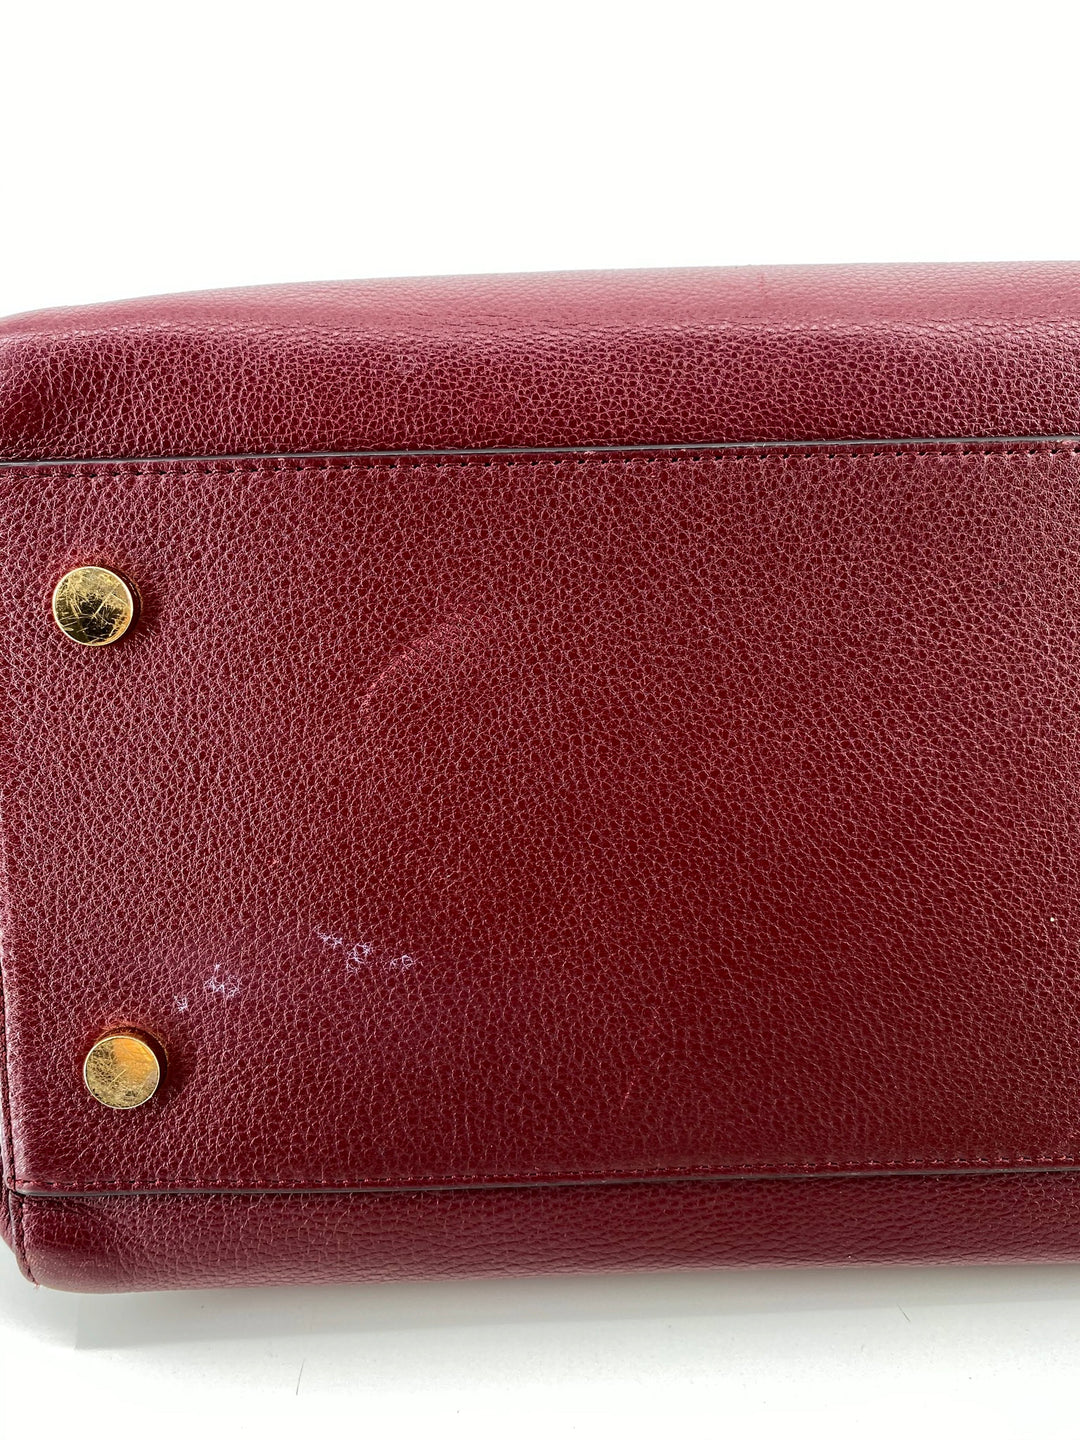 Photo #5 - BRAND: MICHAEL KORS , STYLE: HANDBAG DESIGNER , COLOR: BURGUNDY , SIZE: LARGE , OTHER INFO: AS IS DUE TO COSMETIC WEAR. AS SEEN IN PICTURES, SKU: 105-3752-29907